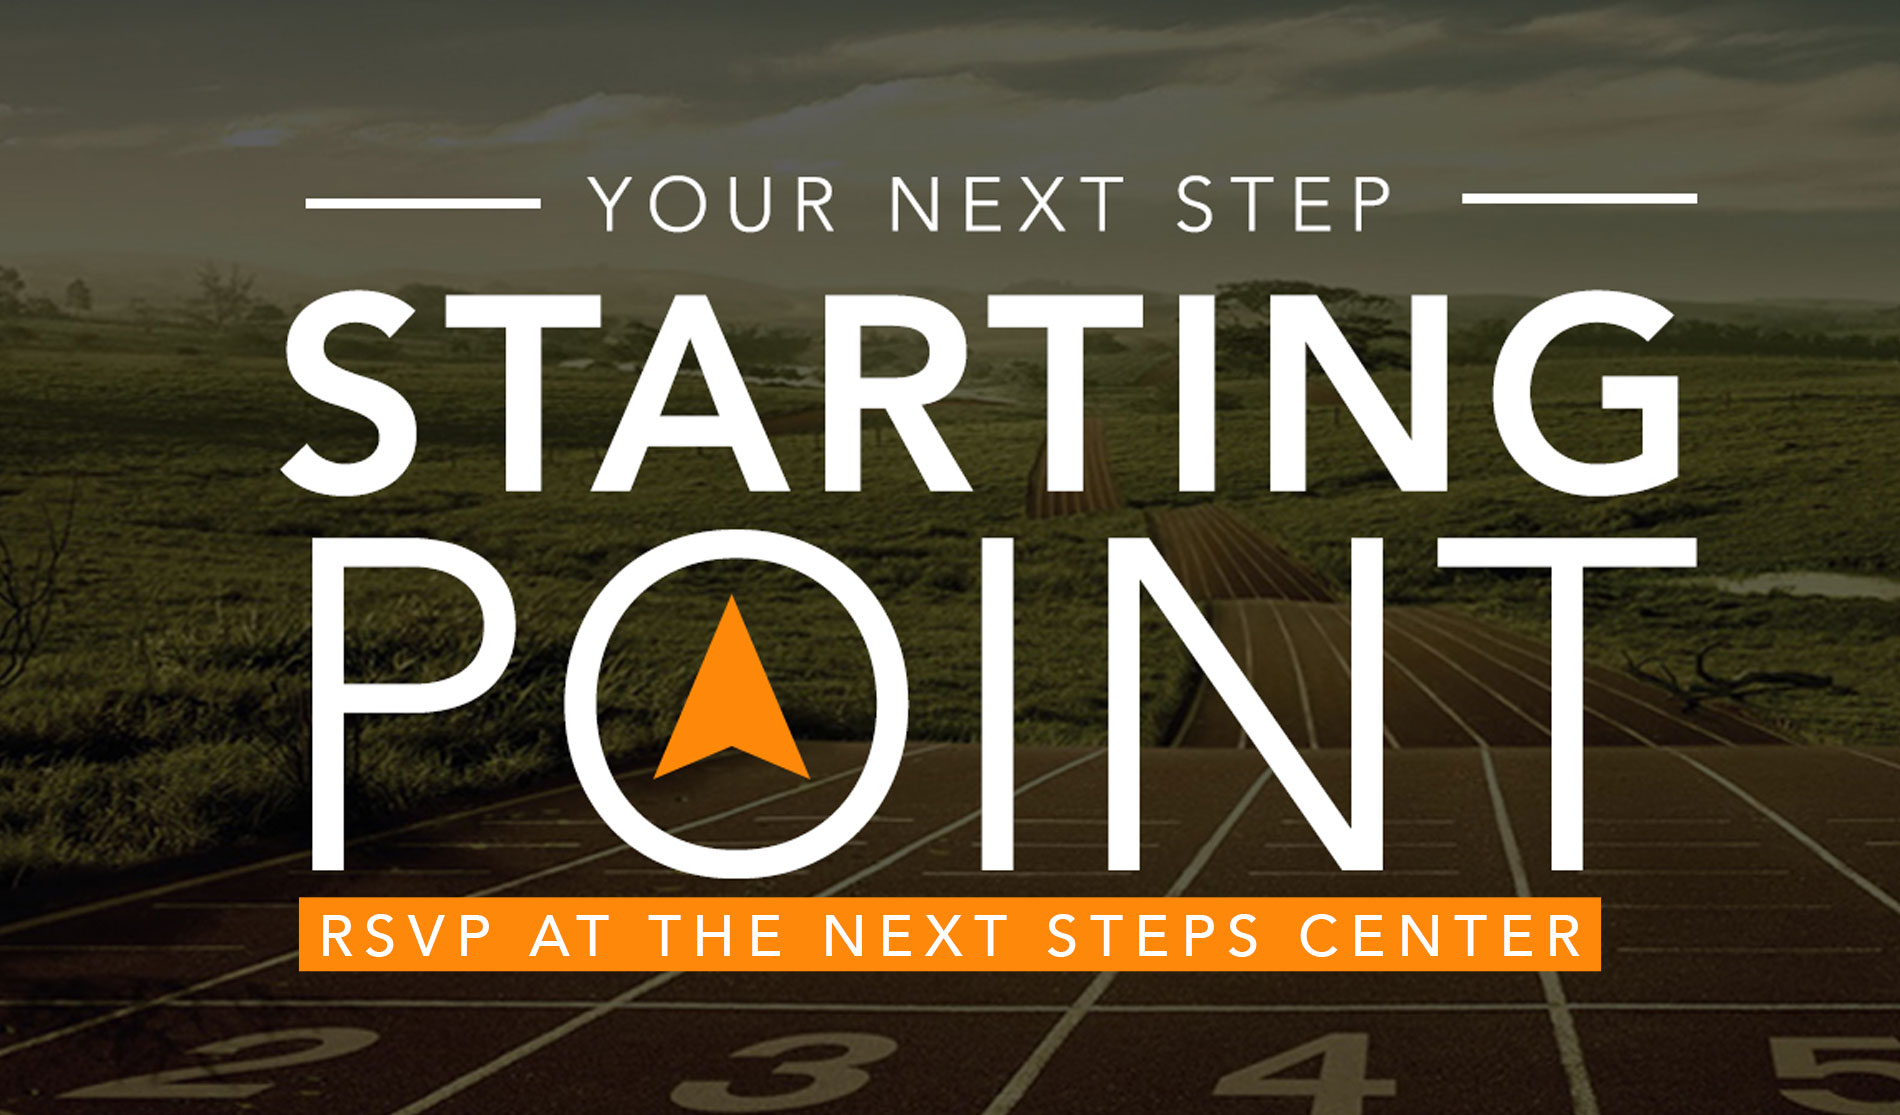 Next Starting Point is Sunday, June 23rd RSVP HERE